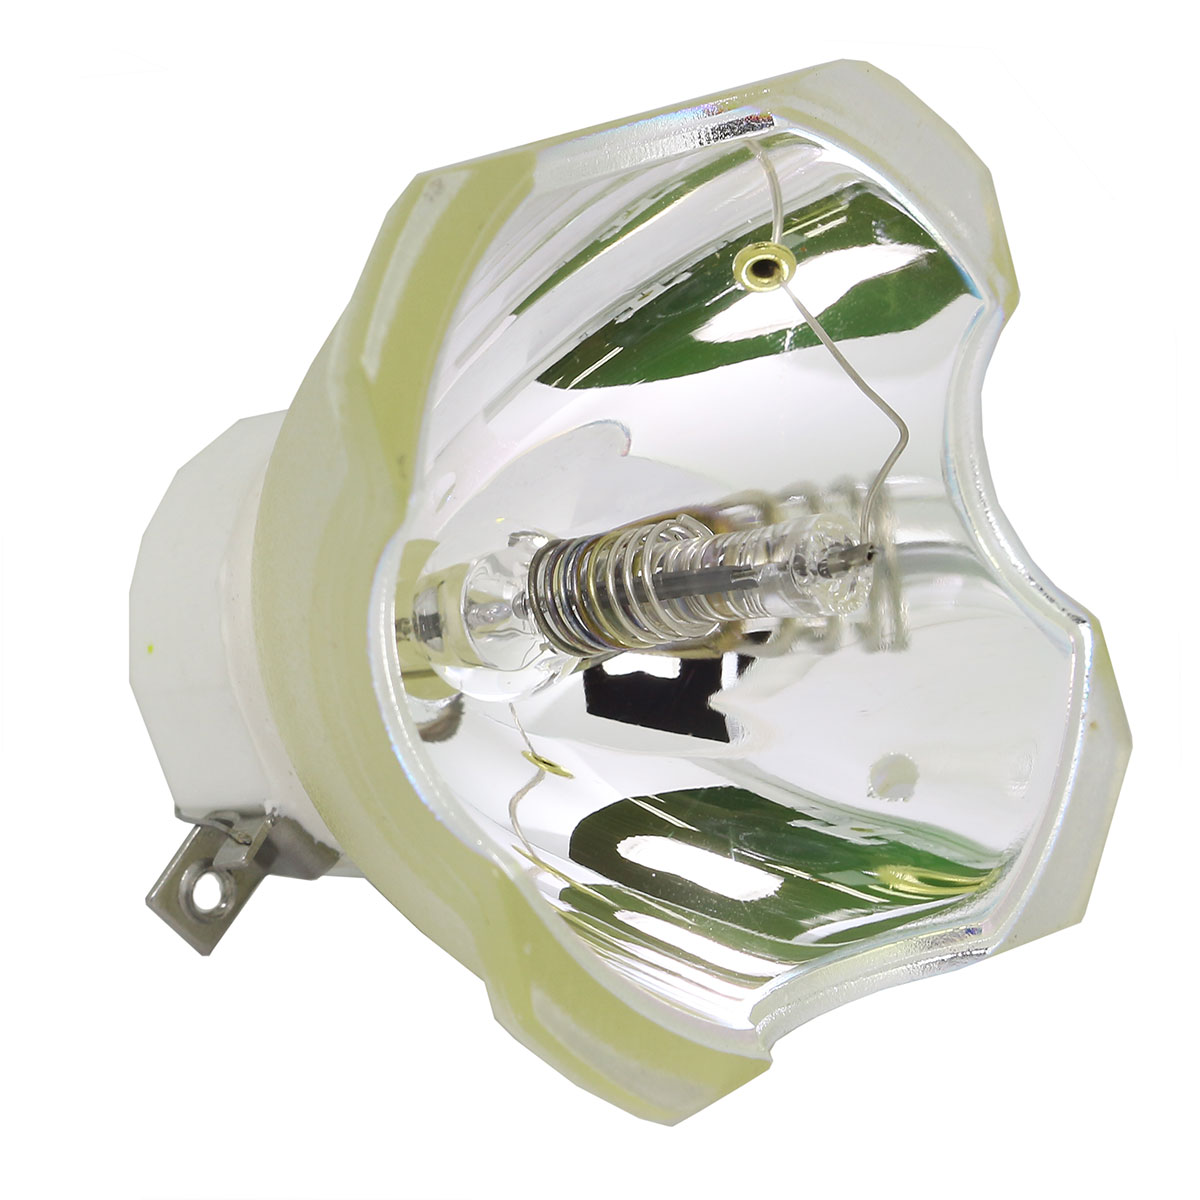 Lutema Economy Bulb for Mitsubishi LW-6100 Projector (Lamp Only) - image 3 of 5